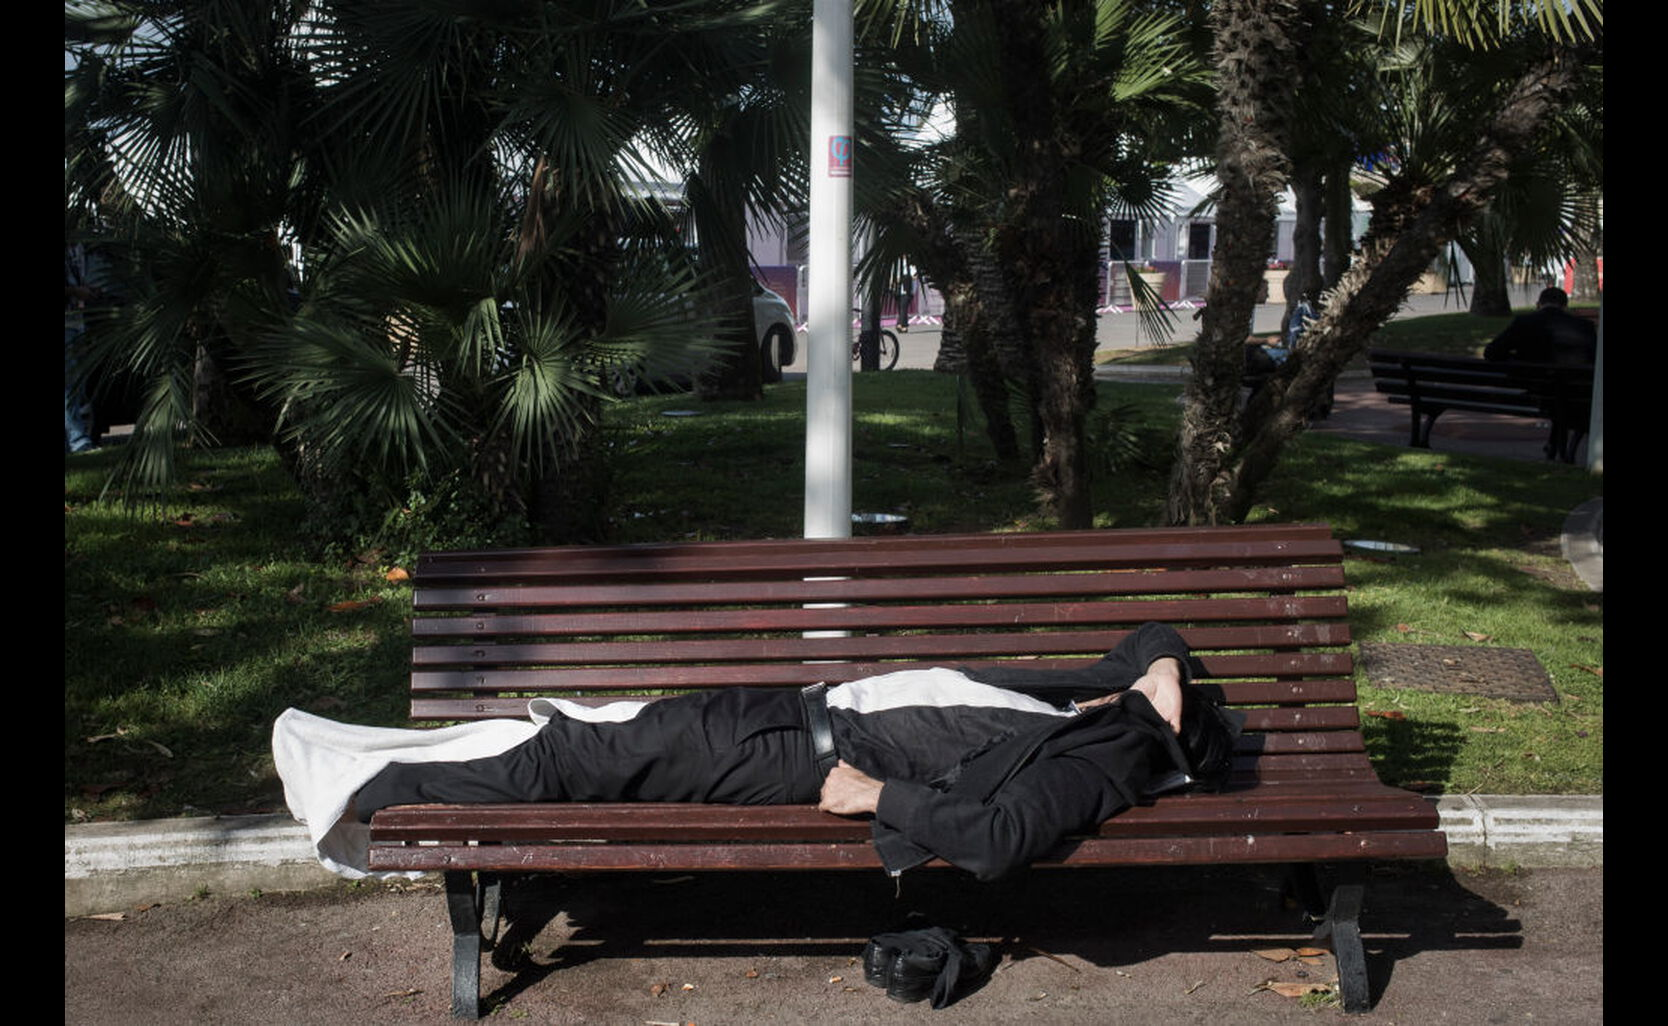 A man resting on bench at Cannes, France